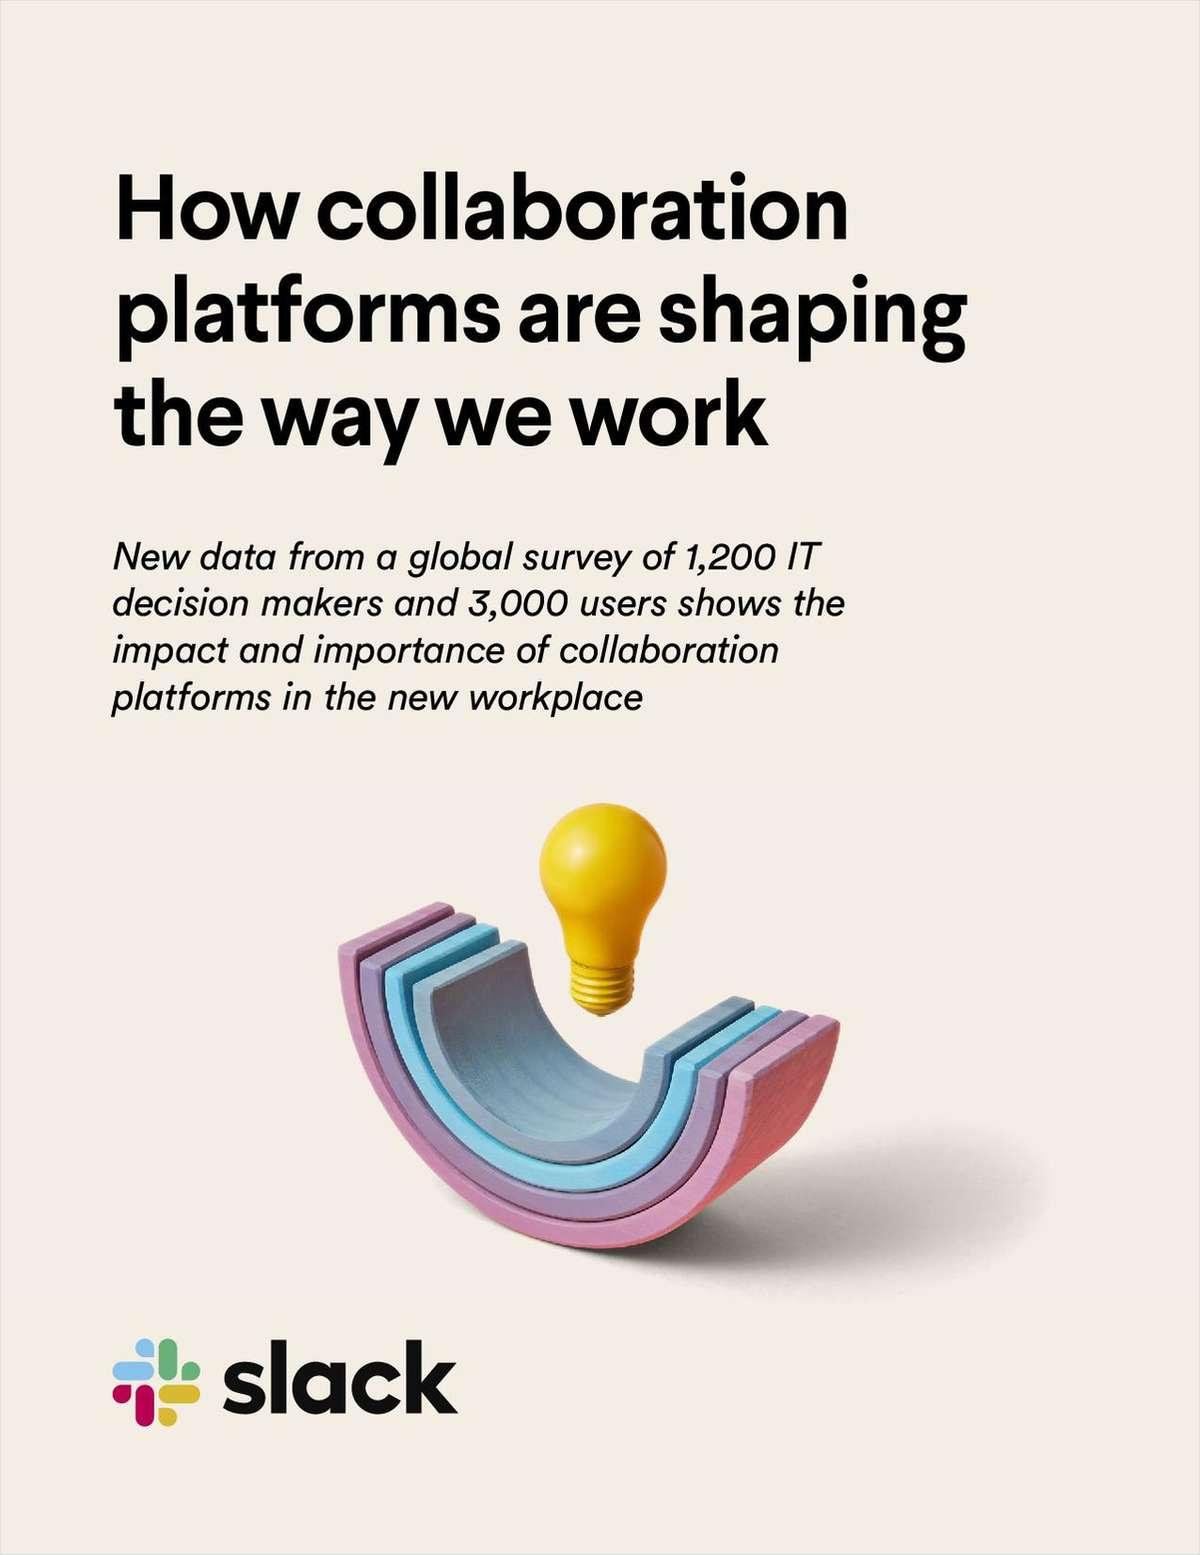 How Collaboration Platforms are Shaping the Way We Work